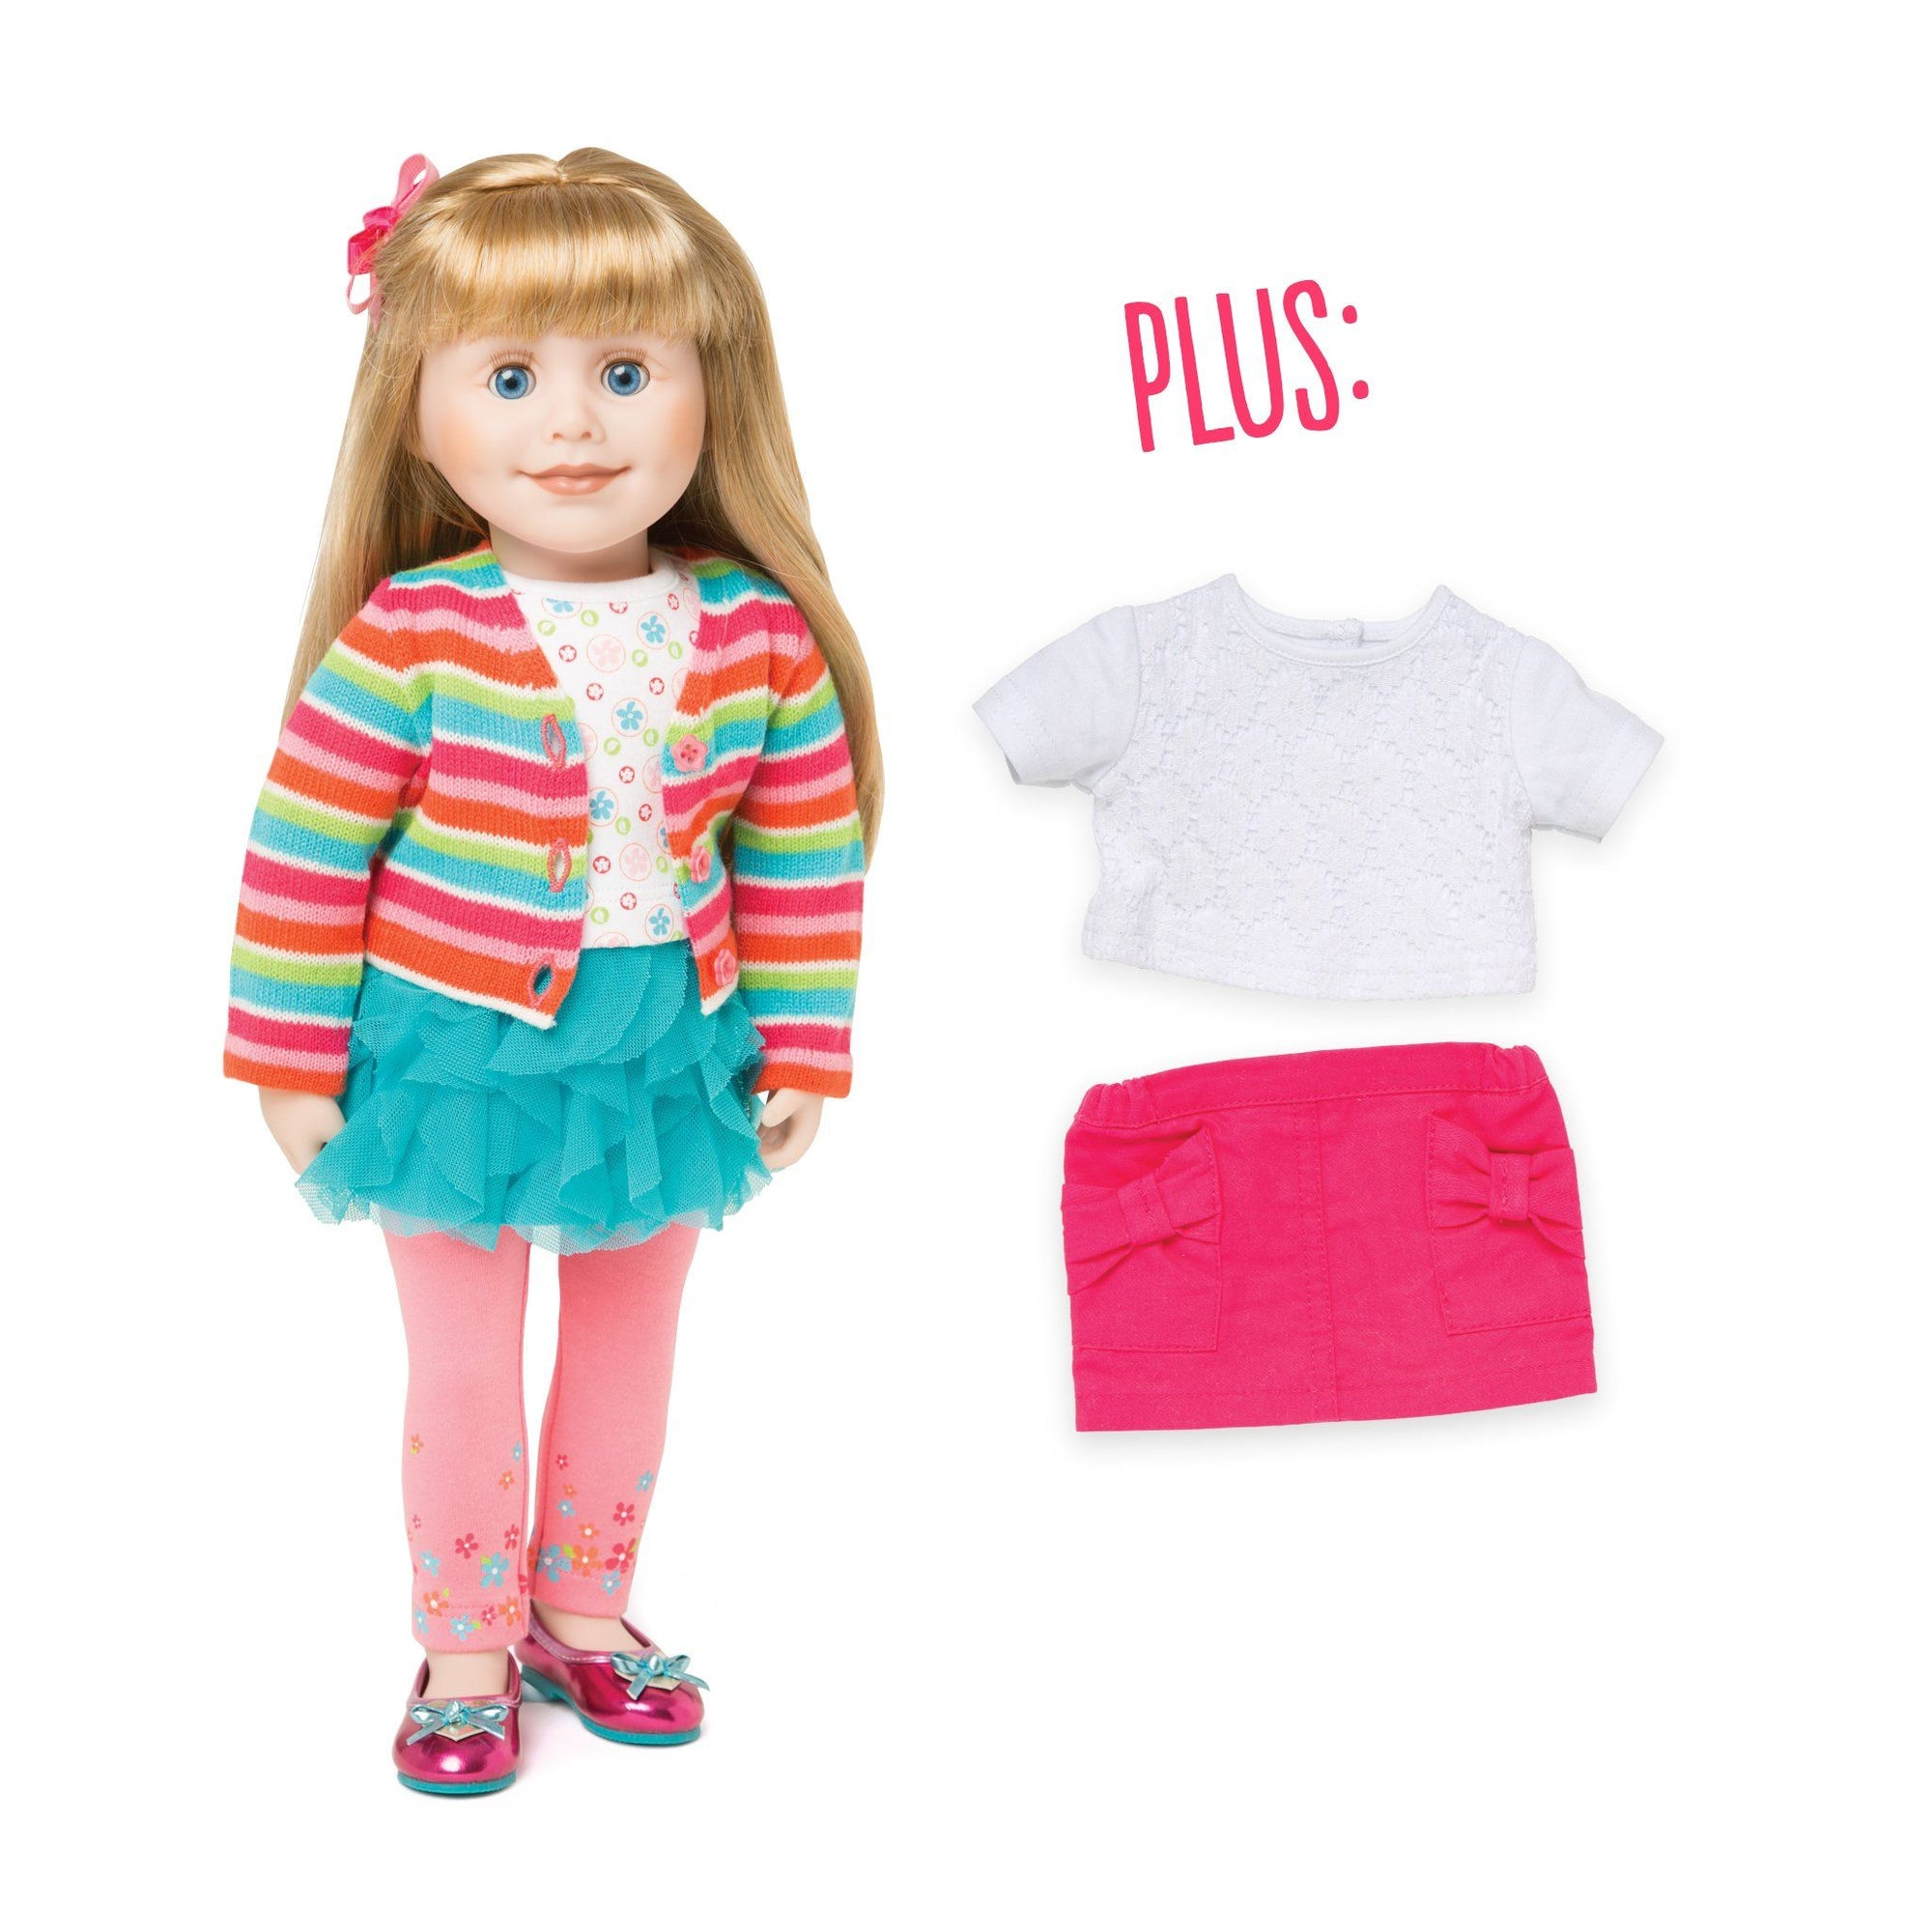 18 inch doll with two tops, two skirts sweater leggings, shoes and hair decoration.